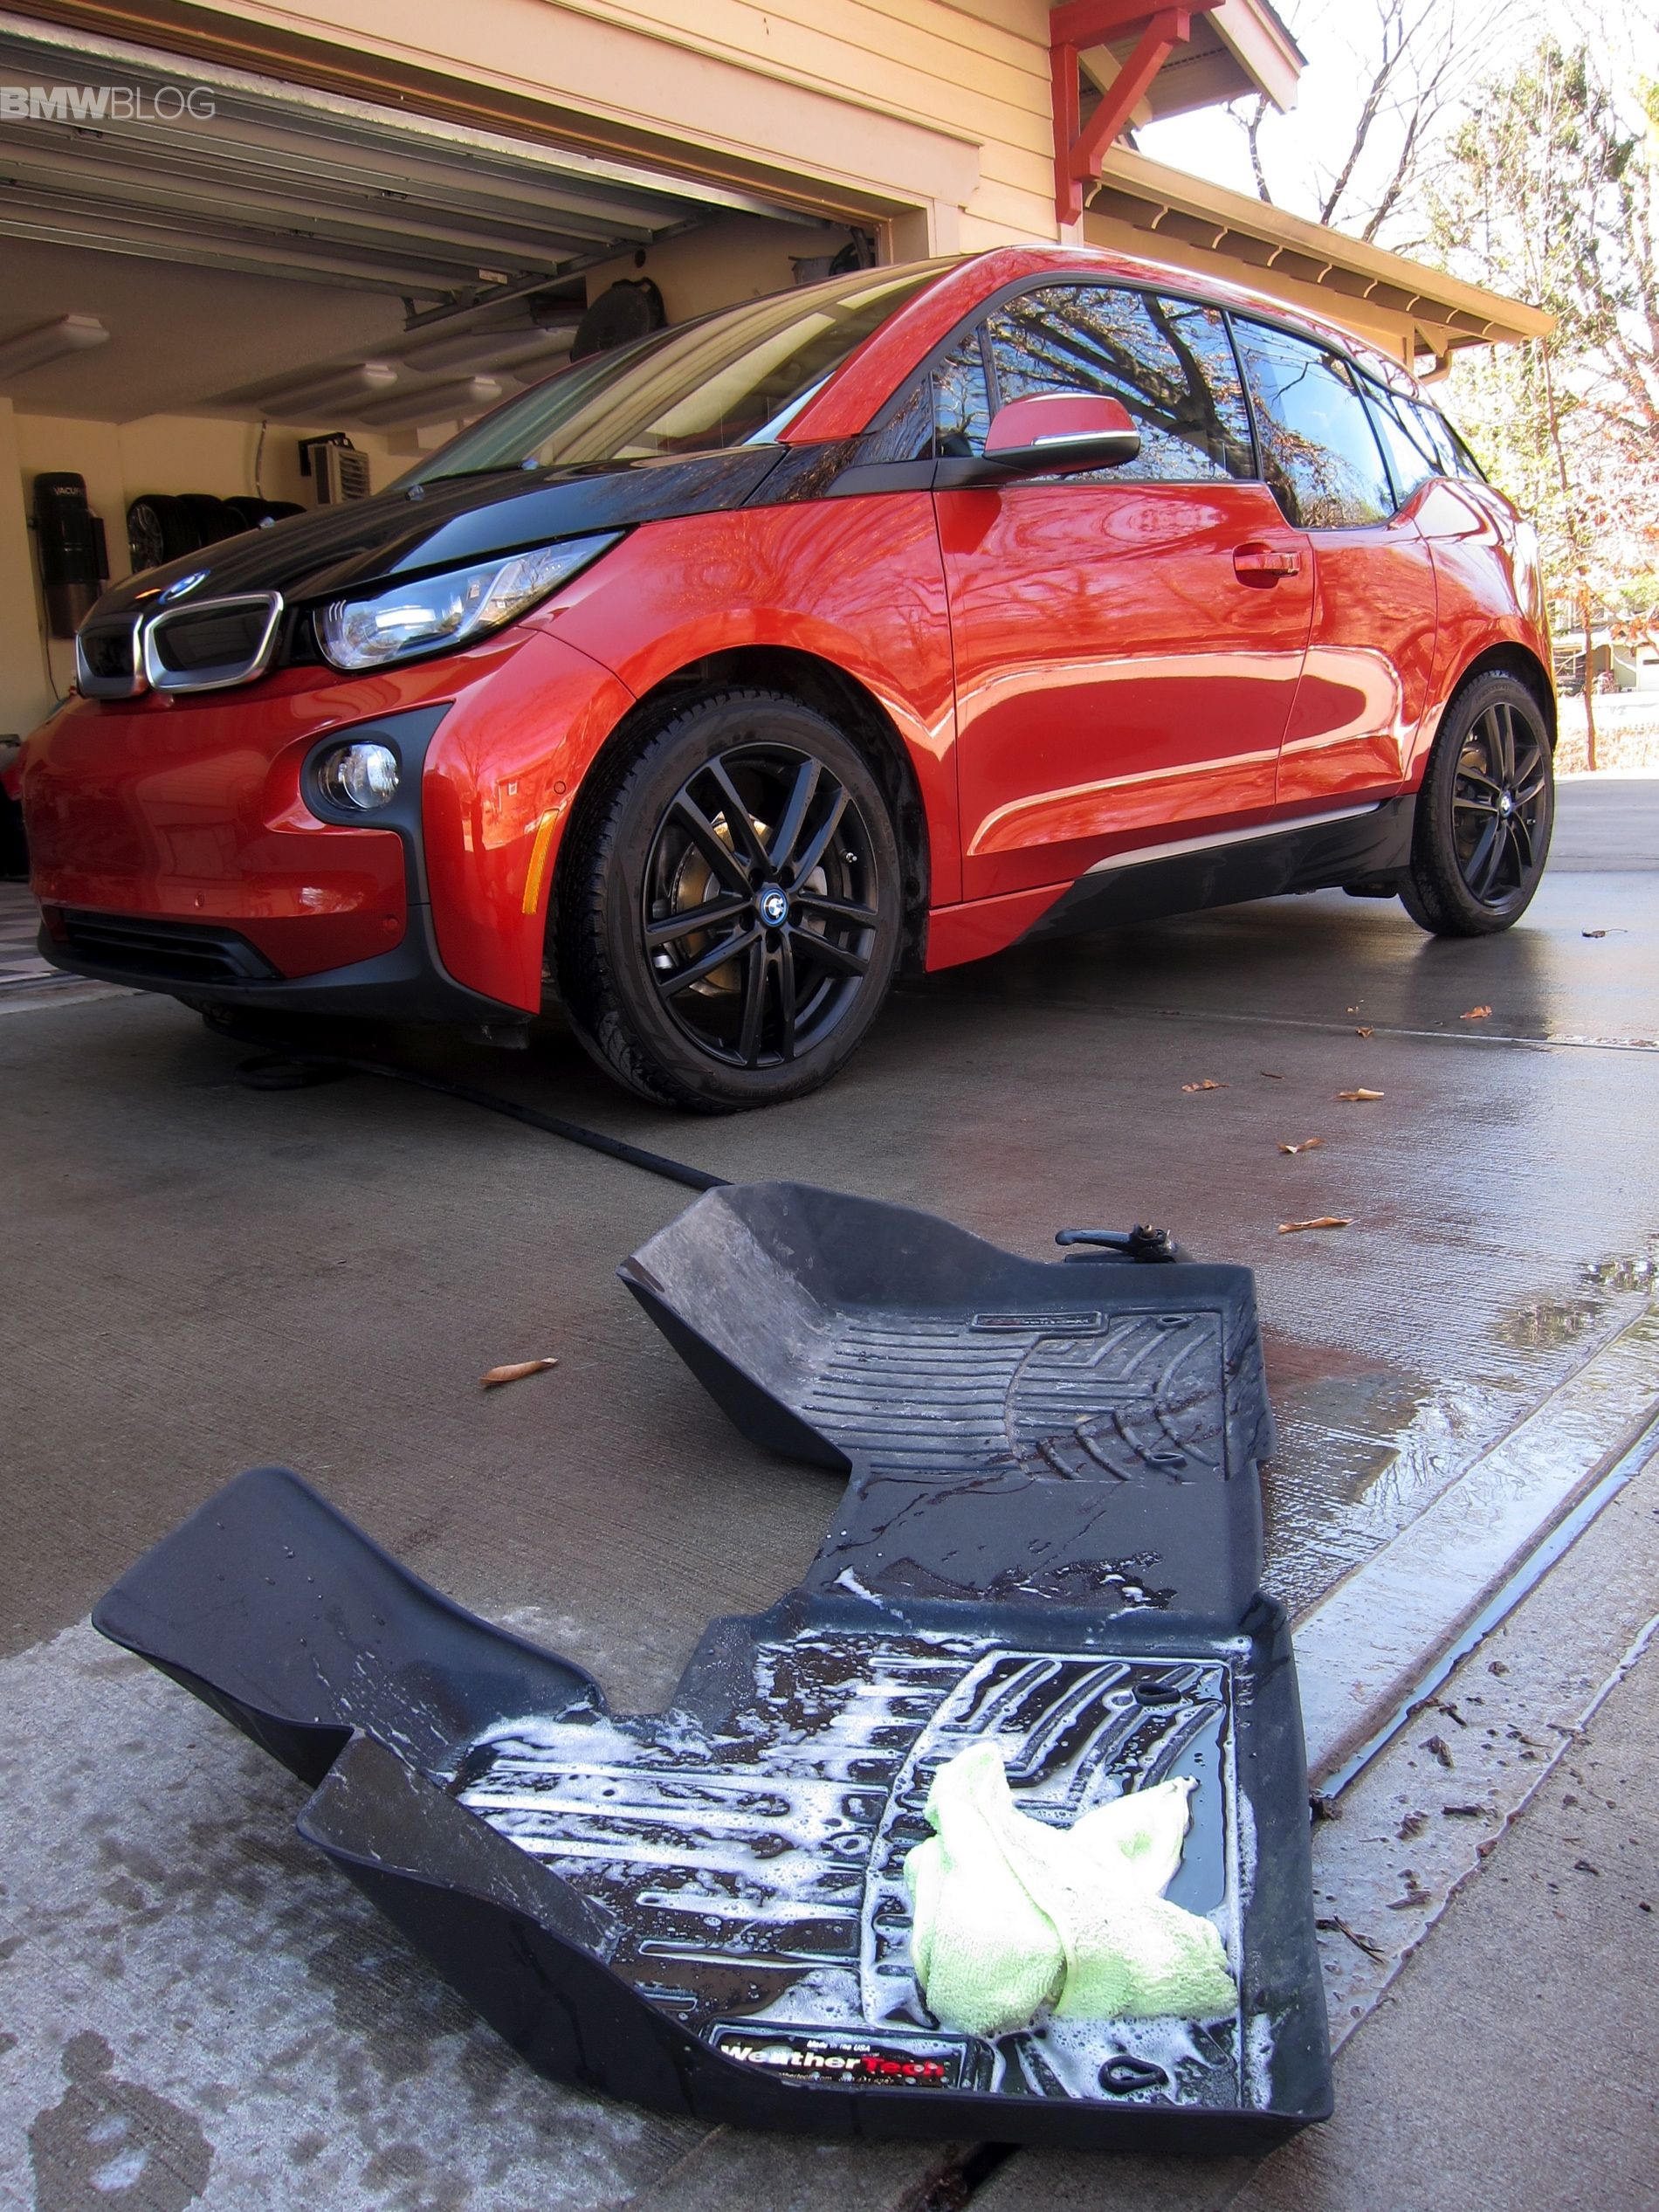 How to unlock weathertech floor mats - Weathertech Floor Mats For Bmw I3 Update Http Www Bmwblog